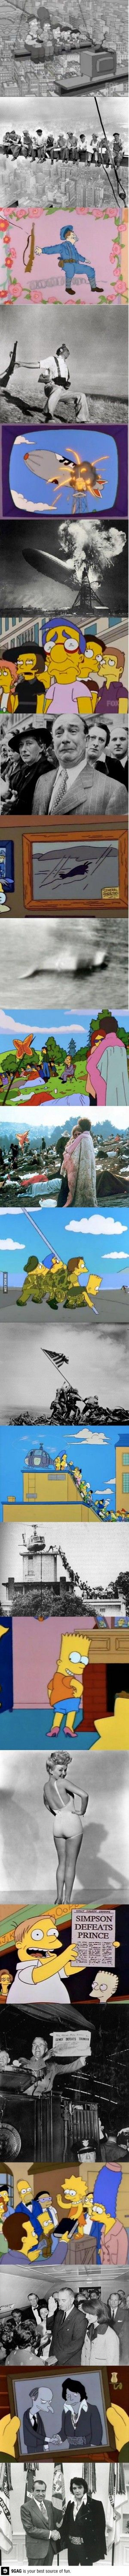 Simpsons hommages